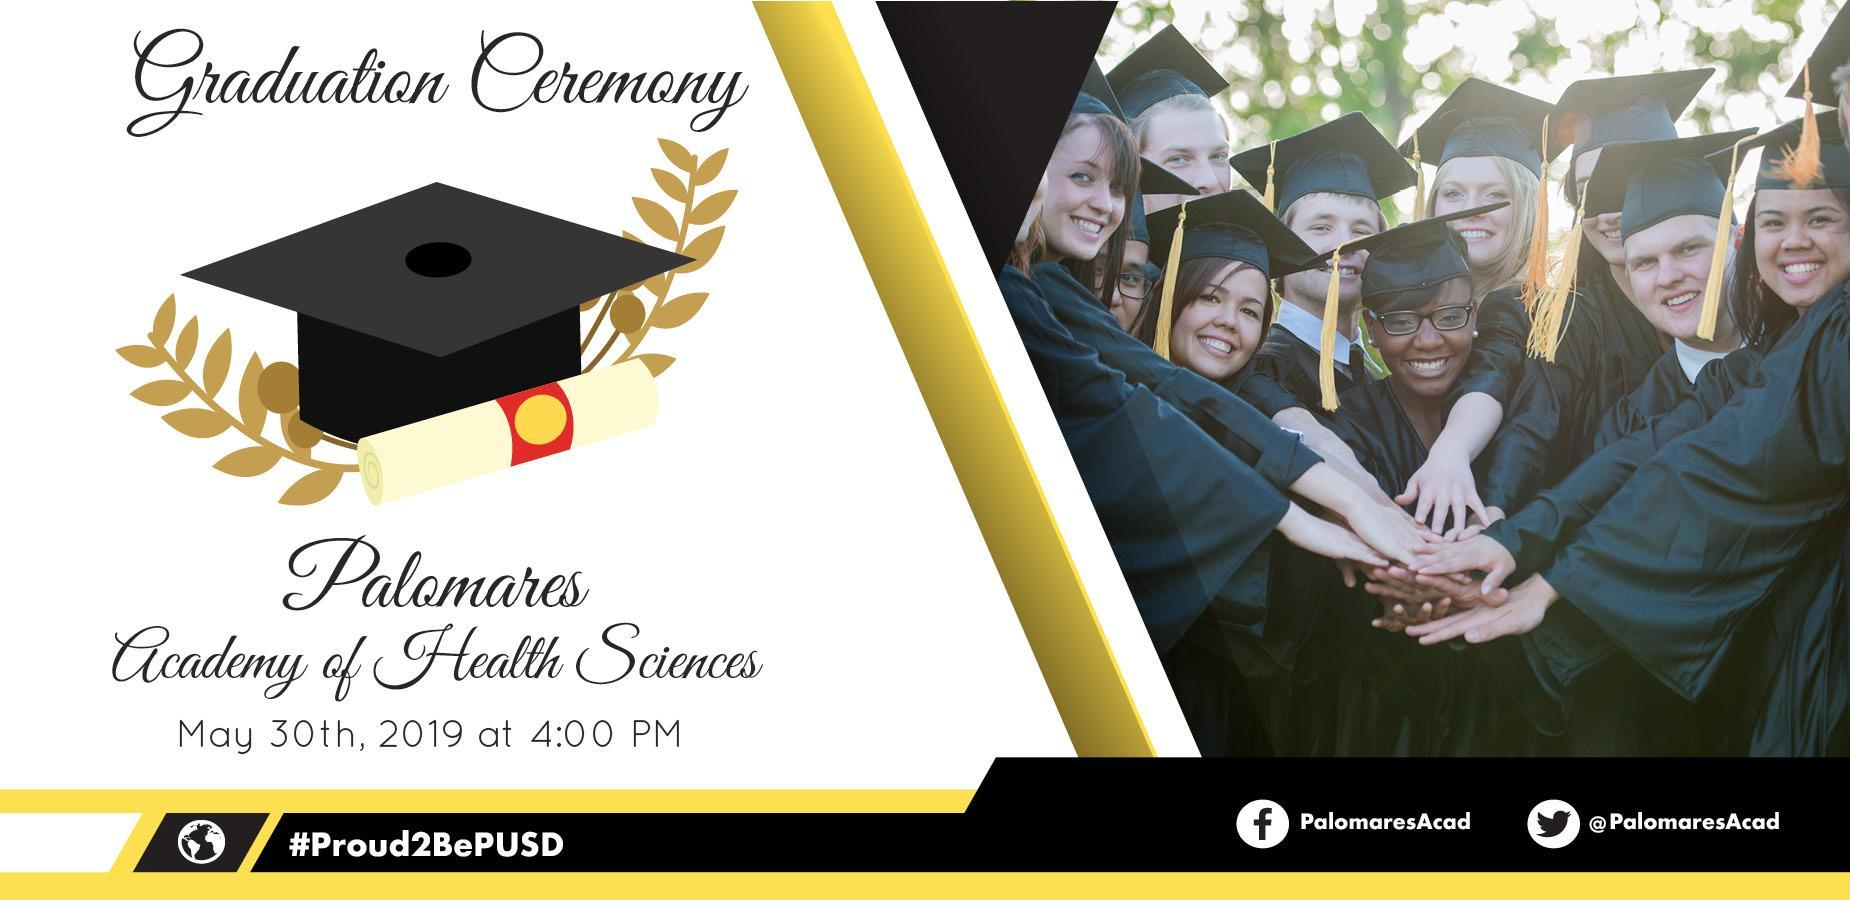 Palomares Academy of Health Sciences: May 30th at 4:00 pm